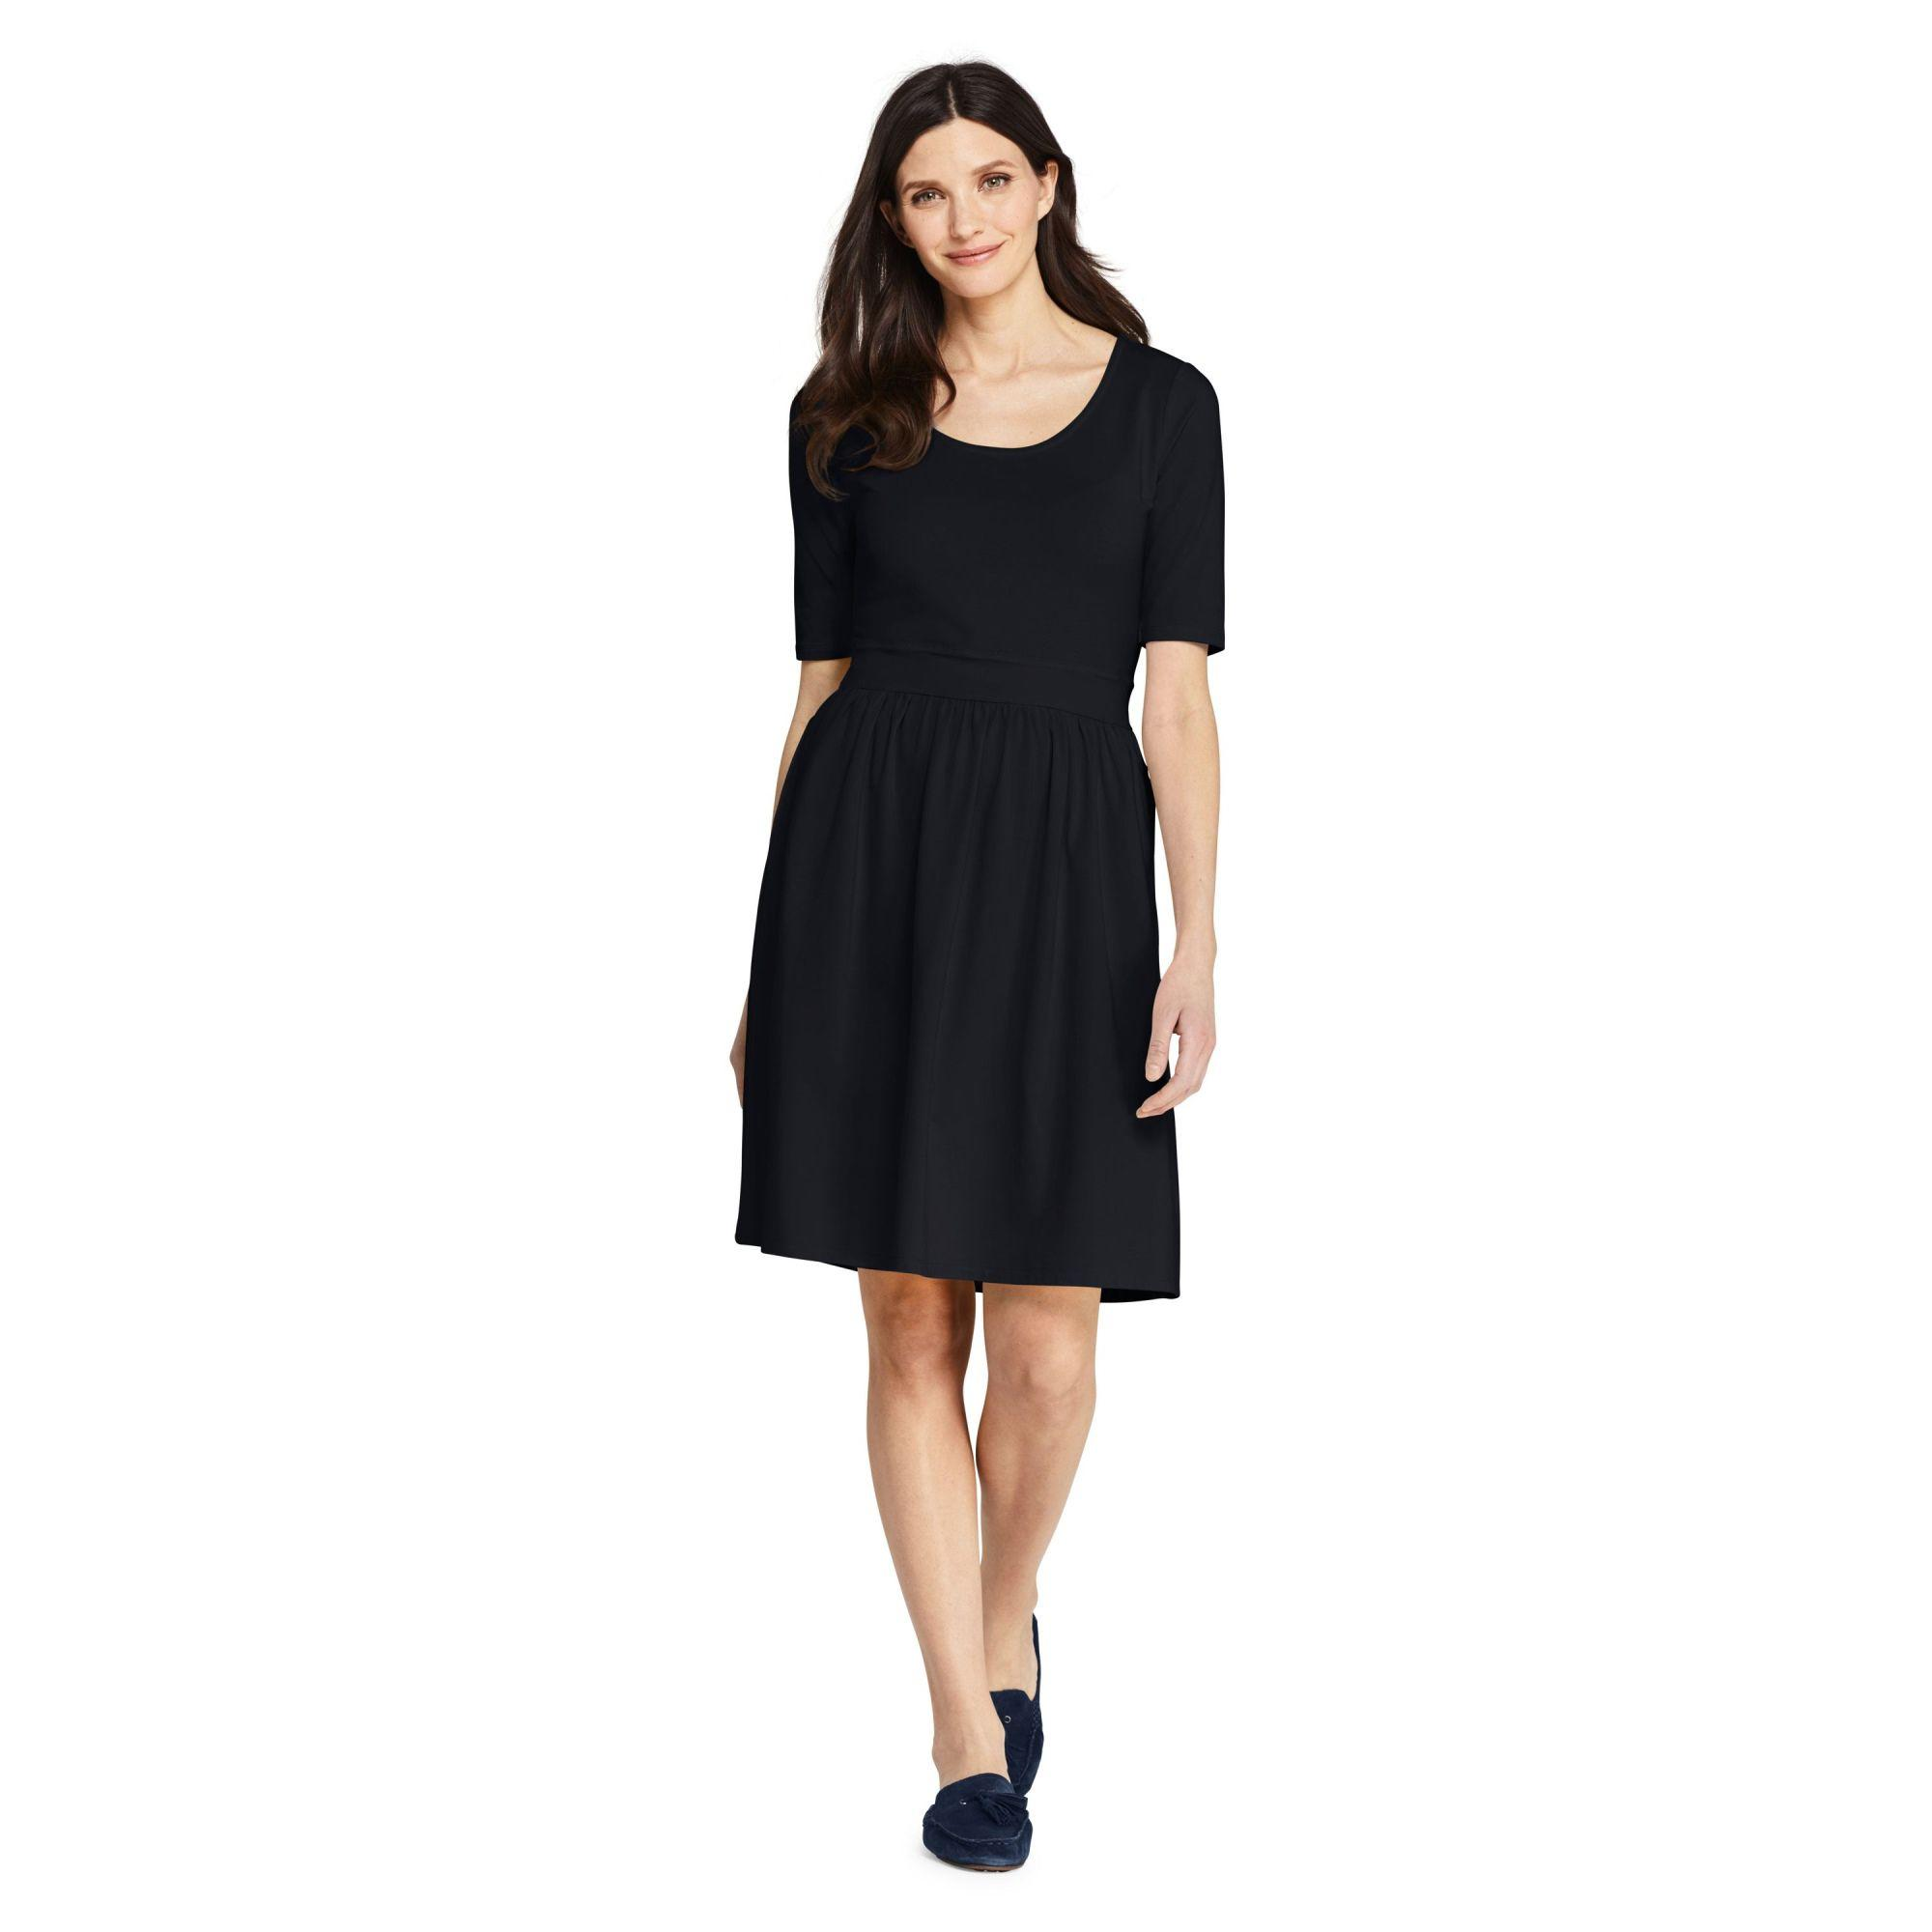 dd2b03d6c9 Lands  End Black Plus Elbow Sleeve Fit And Flare Dress in Black - Lyst